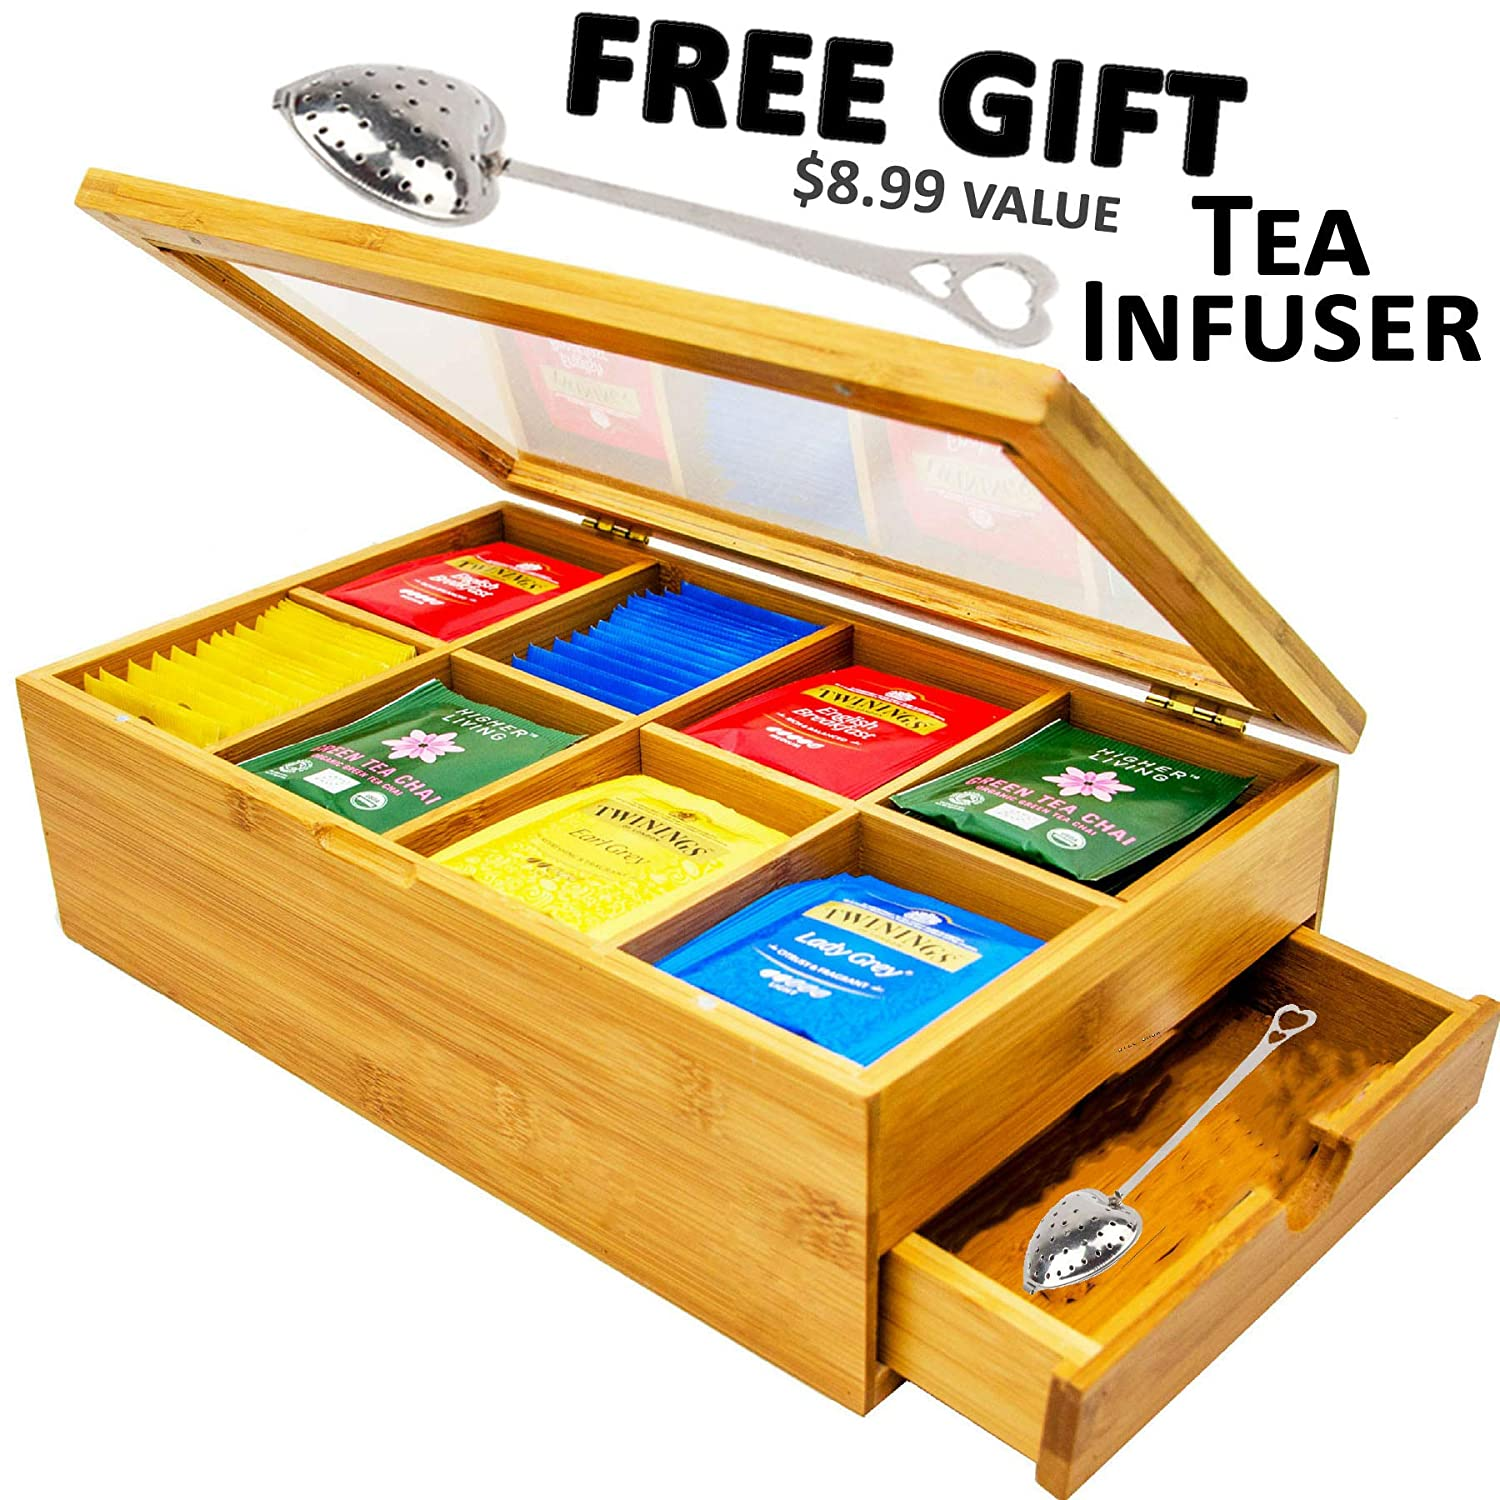 Tea Box 100% Bamboo Tea Box Chest Organizer With Slide Out Drawer, 8 Storage Compartments Clear Shatterproof Hinged Lid By Sugarman Creations SYNCHKG096271